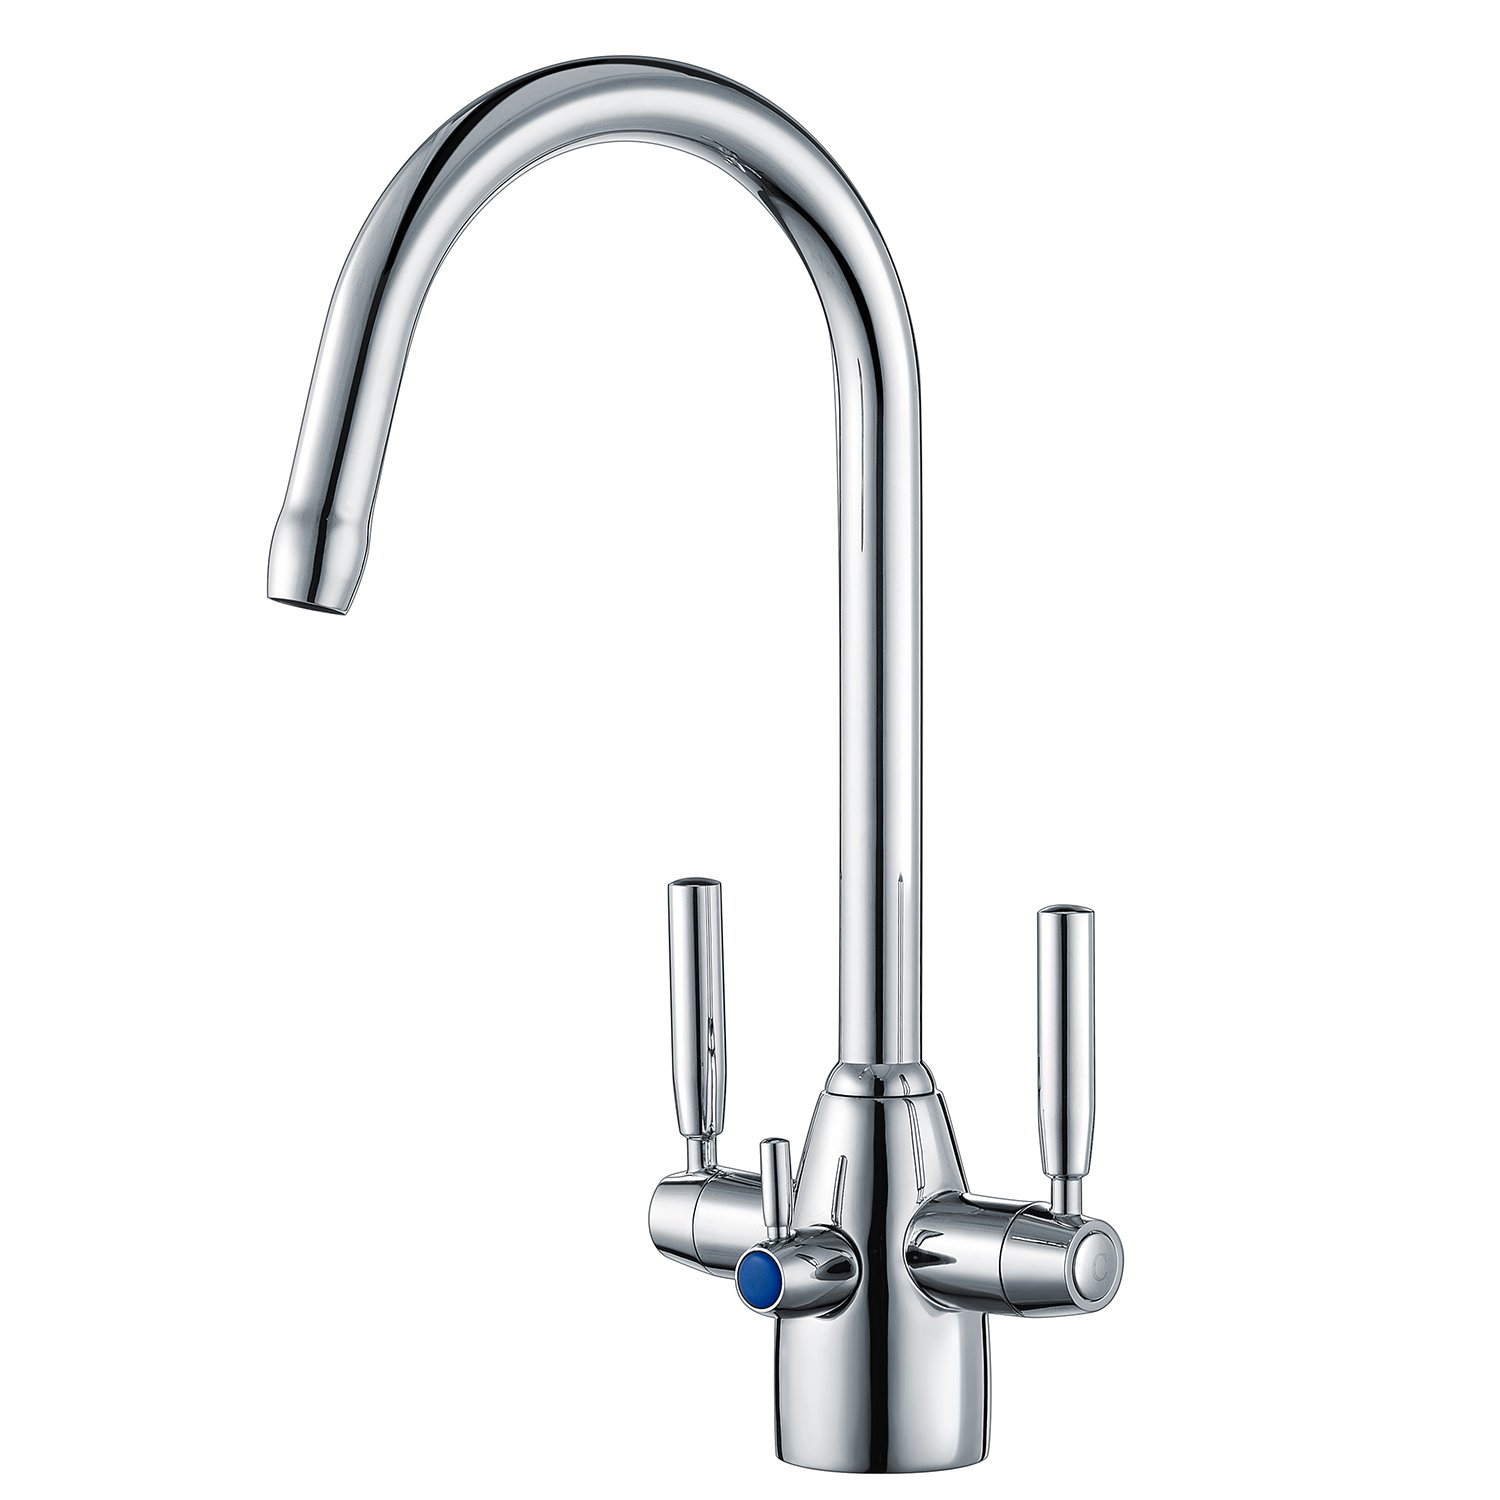 sink system water filter one brondell counter single faucets with under faucet coral stage view left